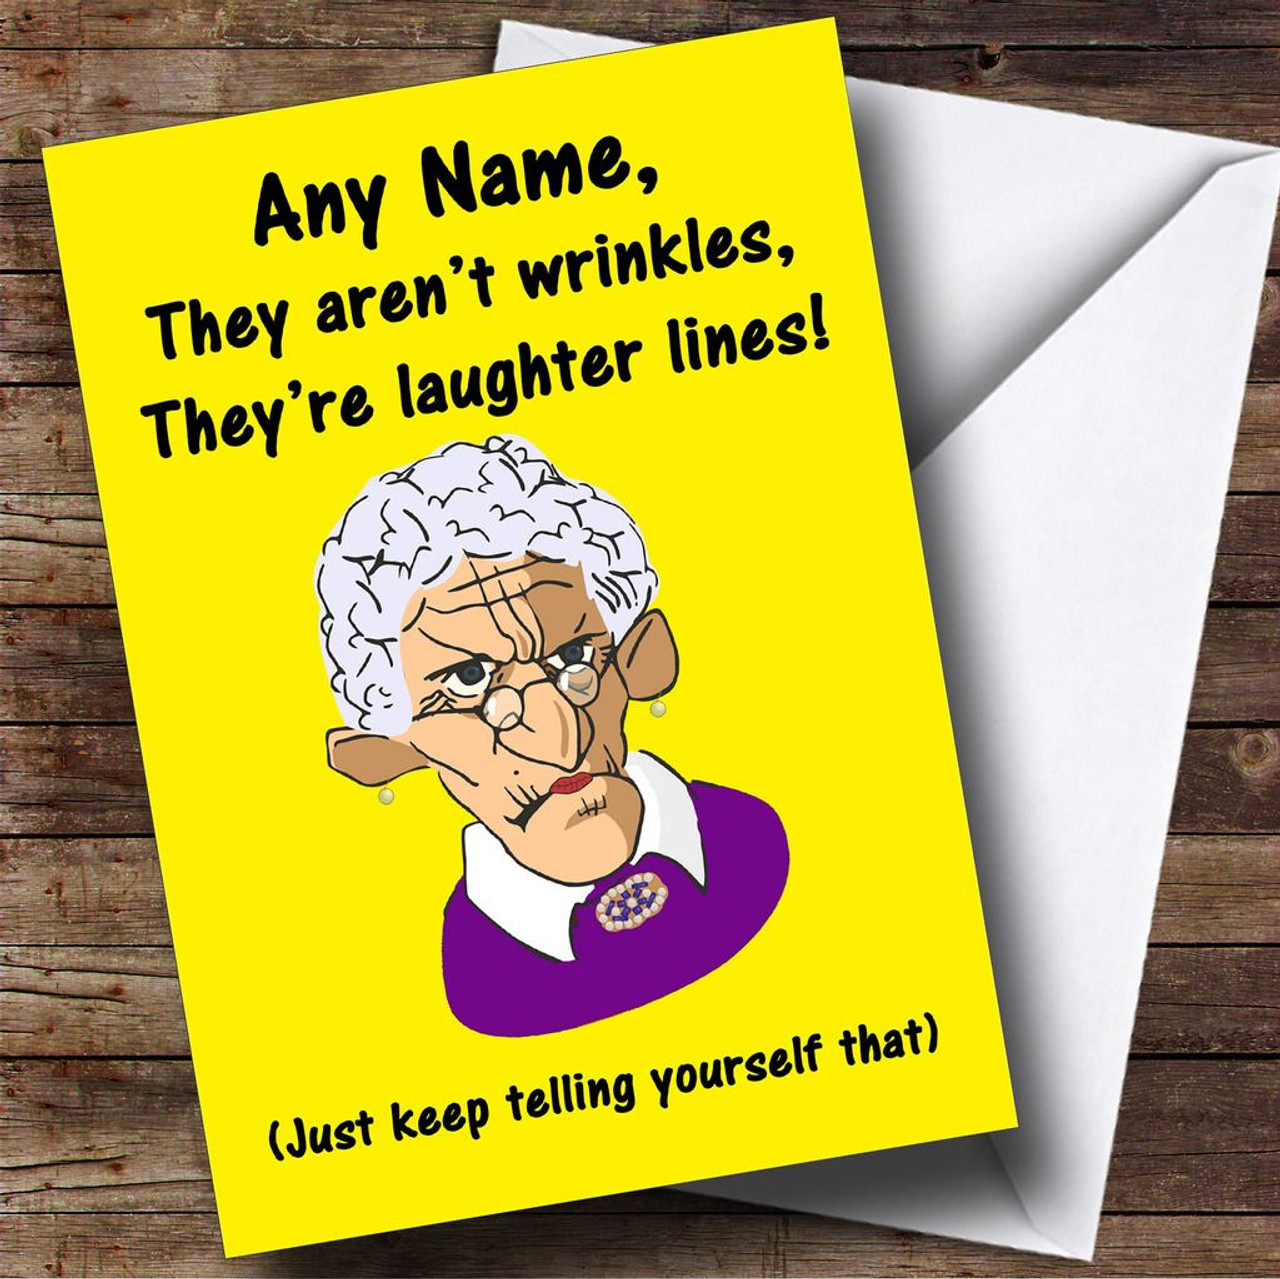 Old Lady Laughter Lines Wrinkles Funny Personalised Birthday Card